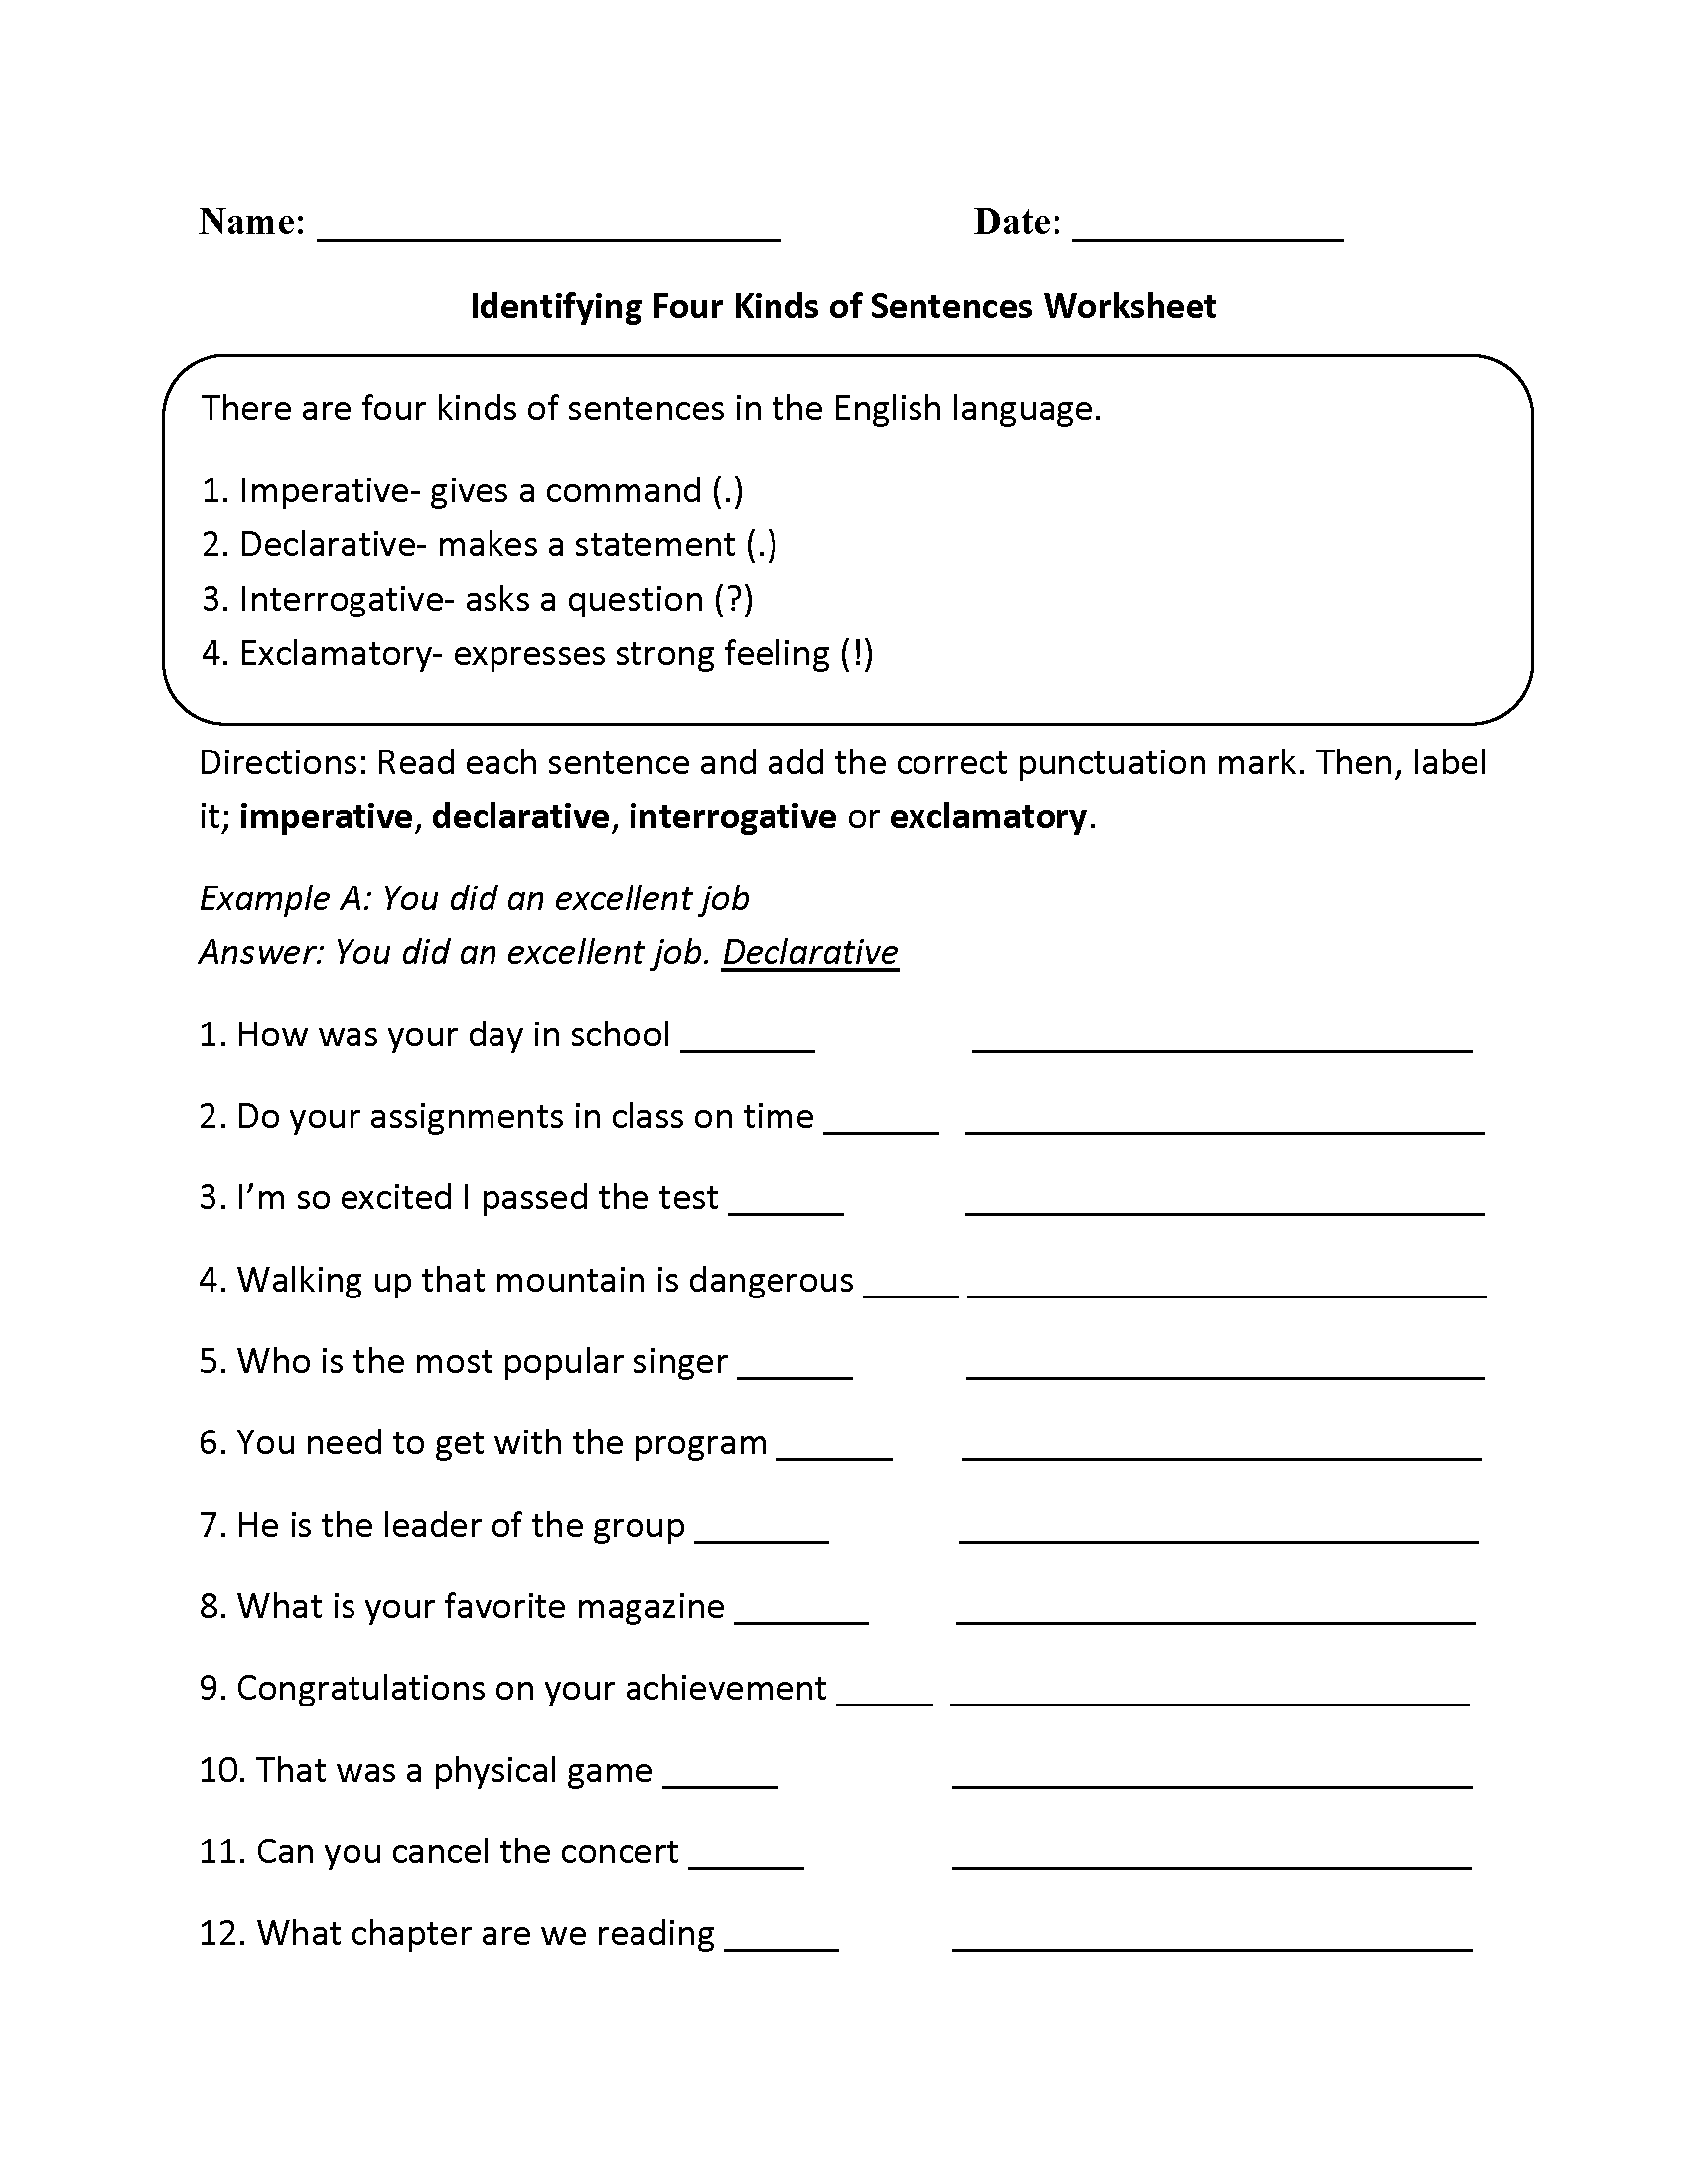 {Kinds of Sentences Worksheets – 4 Types of Sentences Worksheet